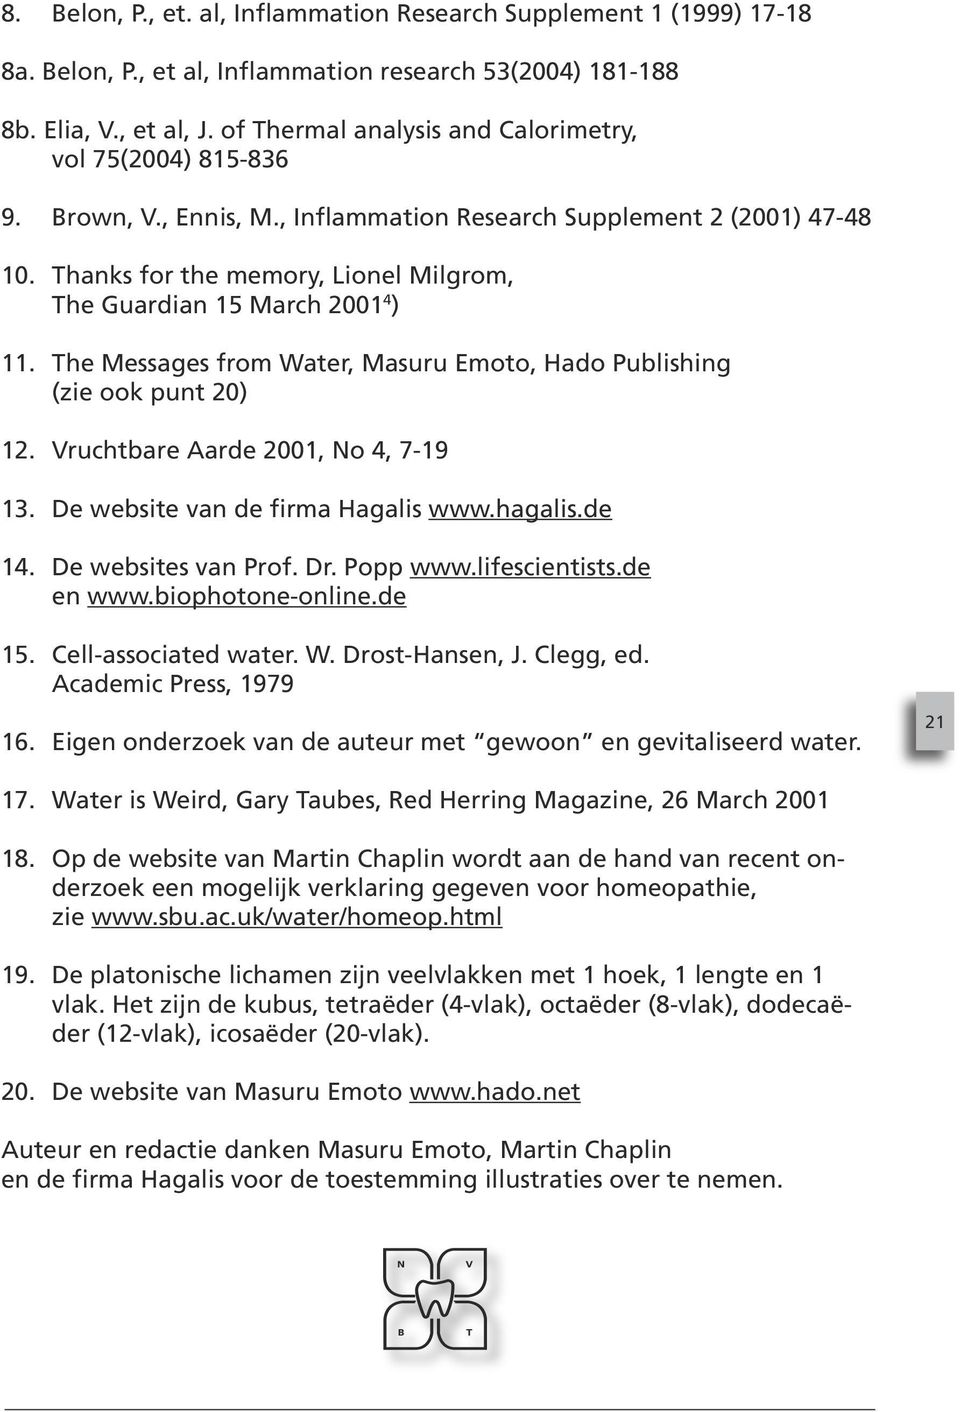 Thanks for the memory, Lionel Milgrom, The Guardian 15 March 2001 4 ) 11. The Messages from Water, Masuru Emoto, Hado Publishing (zie ook punt 20) 12. Vruchtbare Aarde 2001, No 4, 7-19 13.